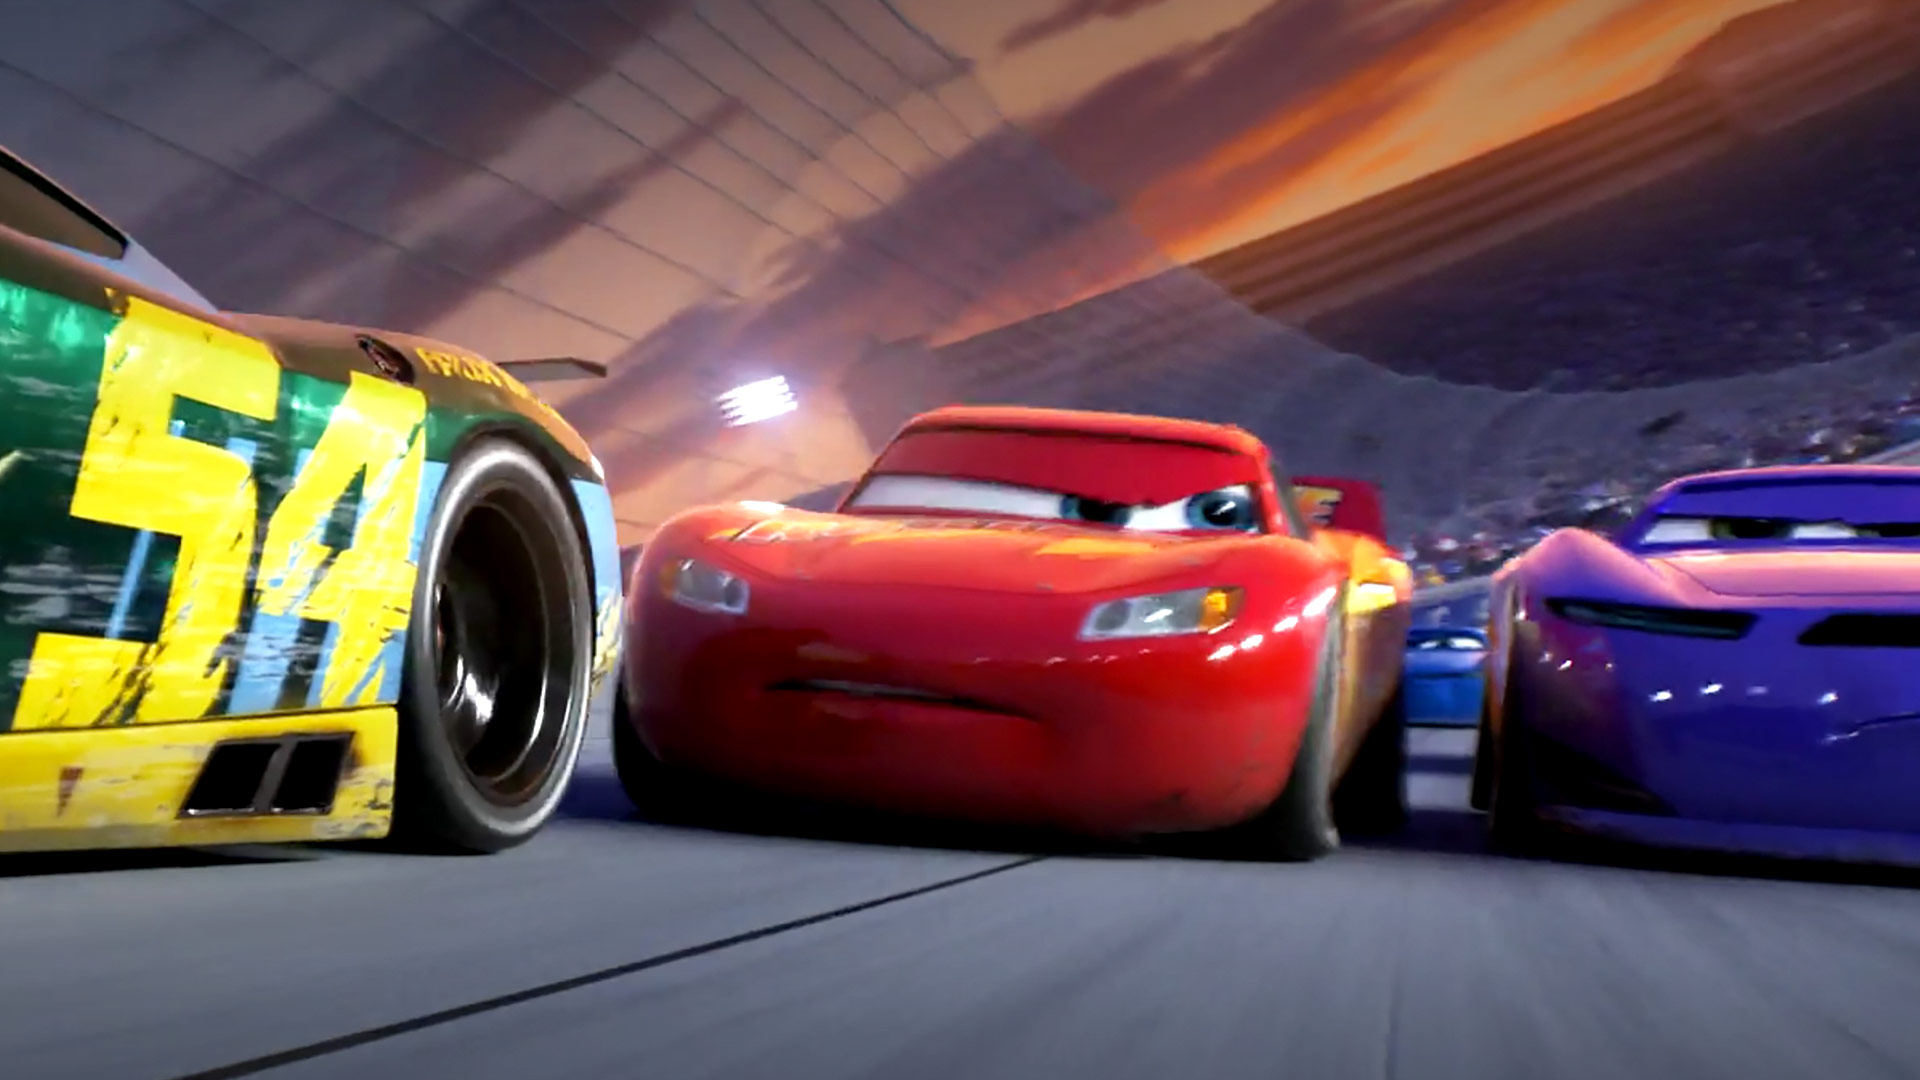 Weekend Box Office Report: 'Cars 3' Drives Away With First Place